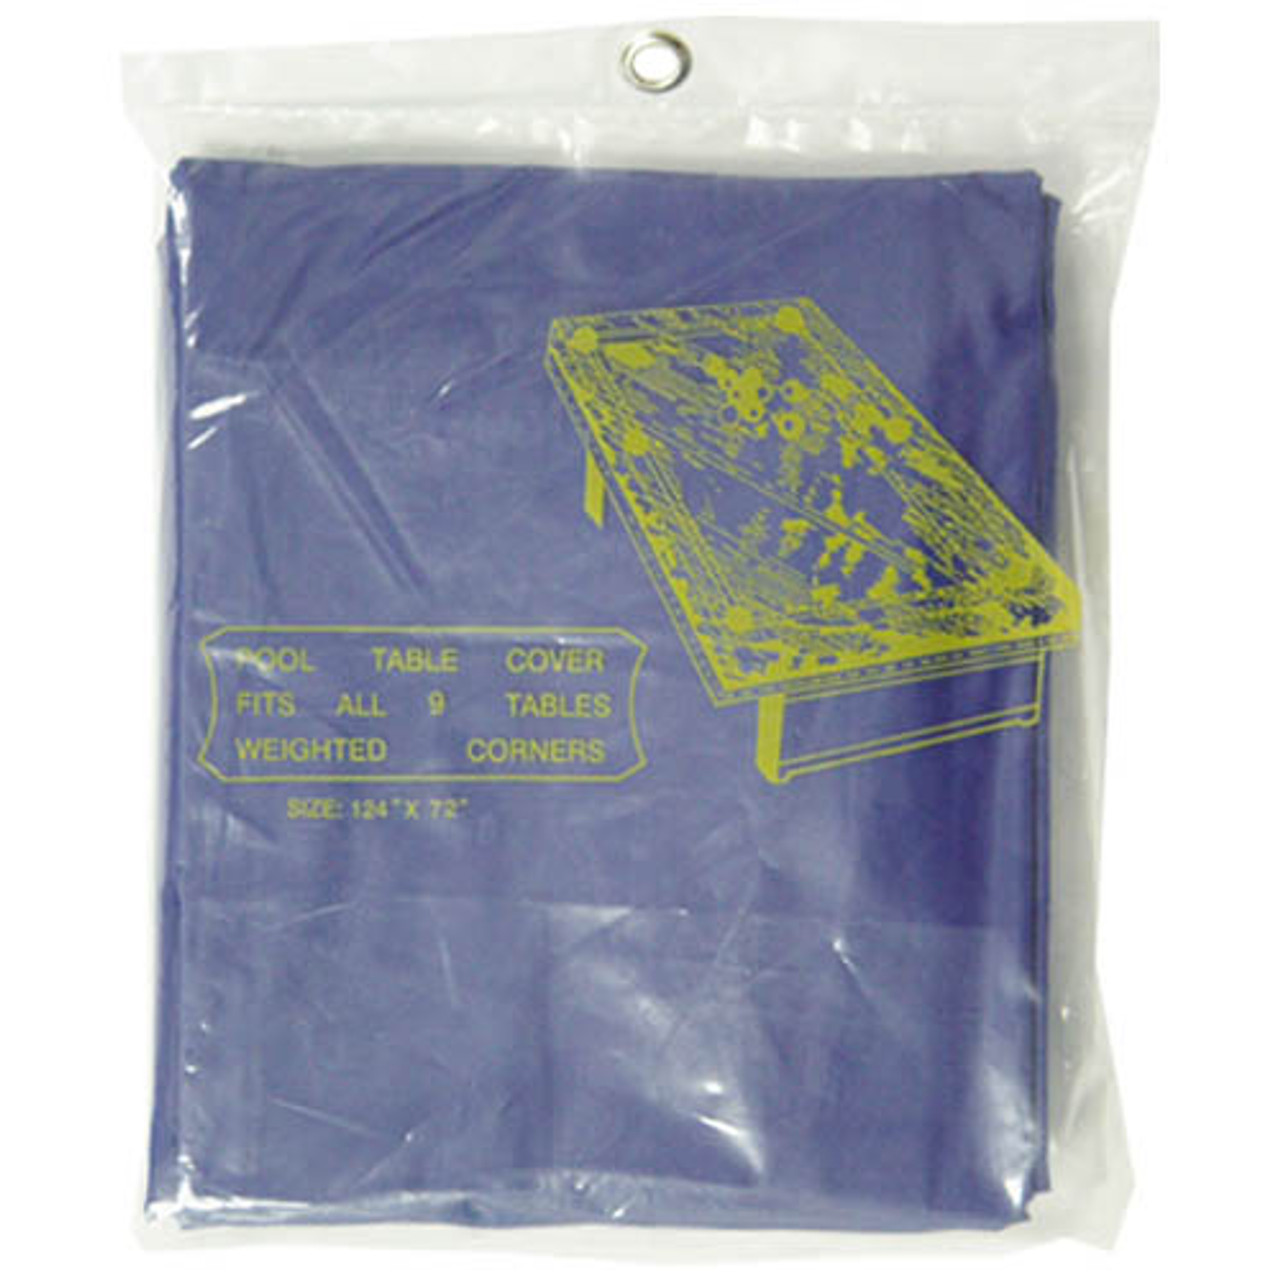 Standard Pool Table Cover, Blue